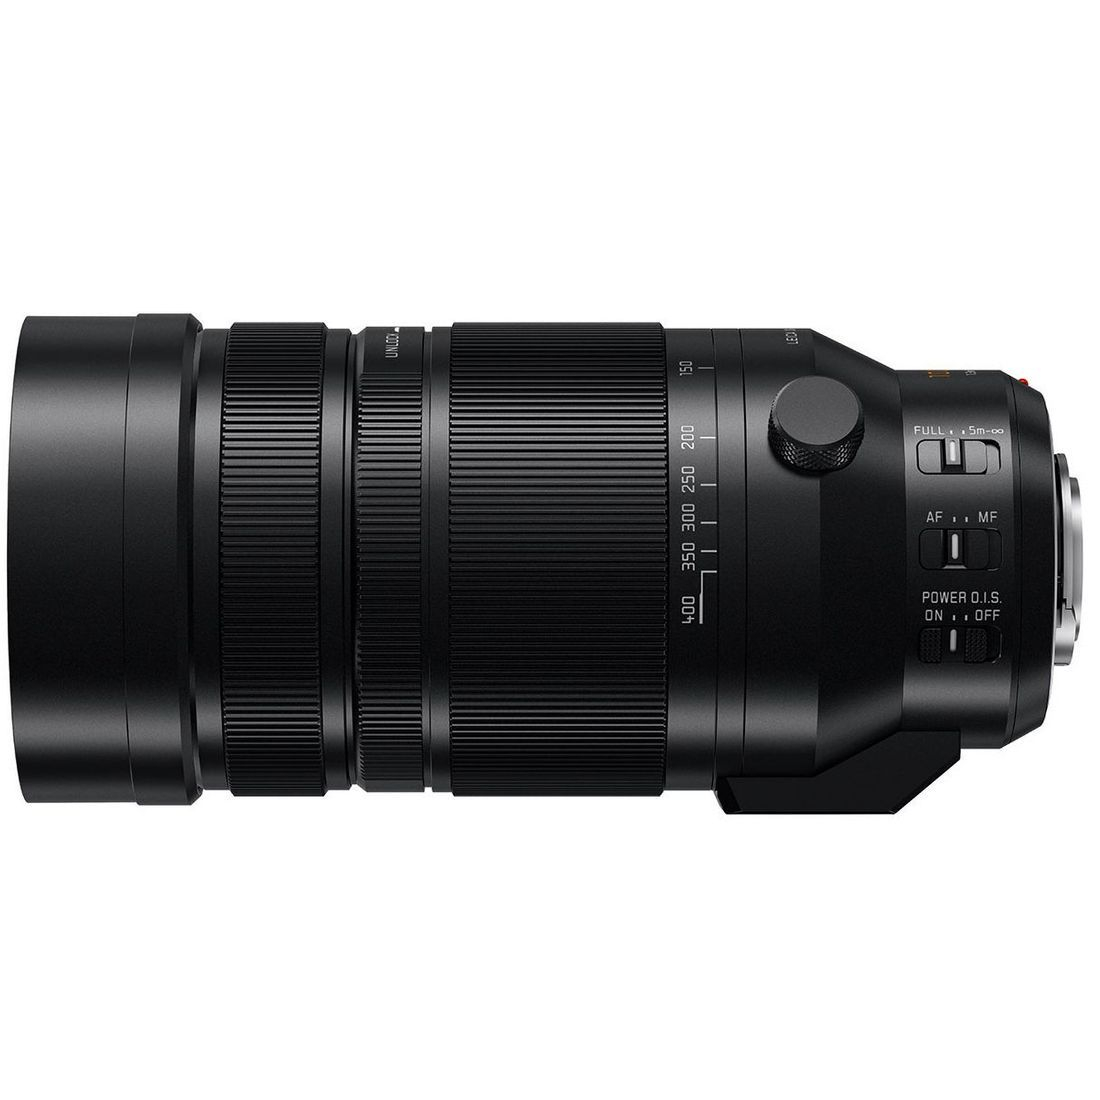 Panasonic H-RS100400 Leica DG Vario-Elmar 100-400mm f/4-6.3 ASPH. POWER O.I.S. Lens